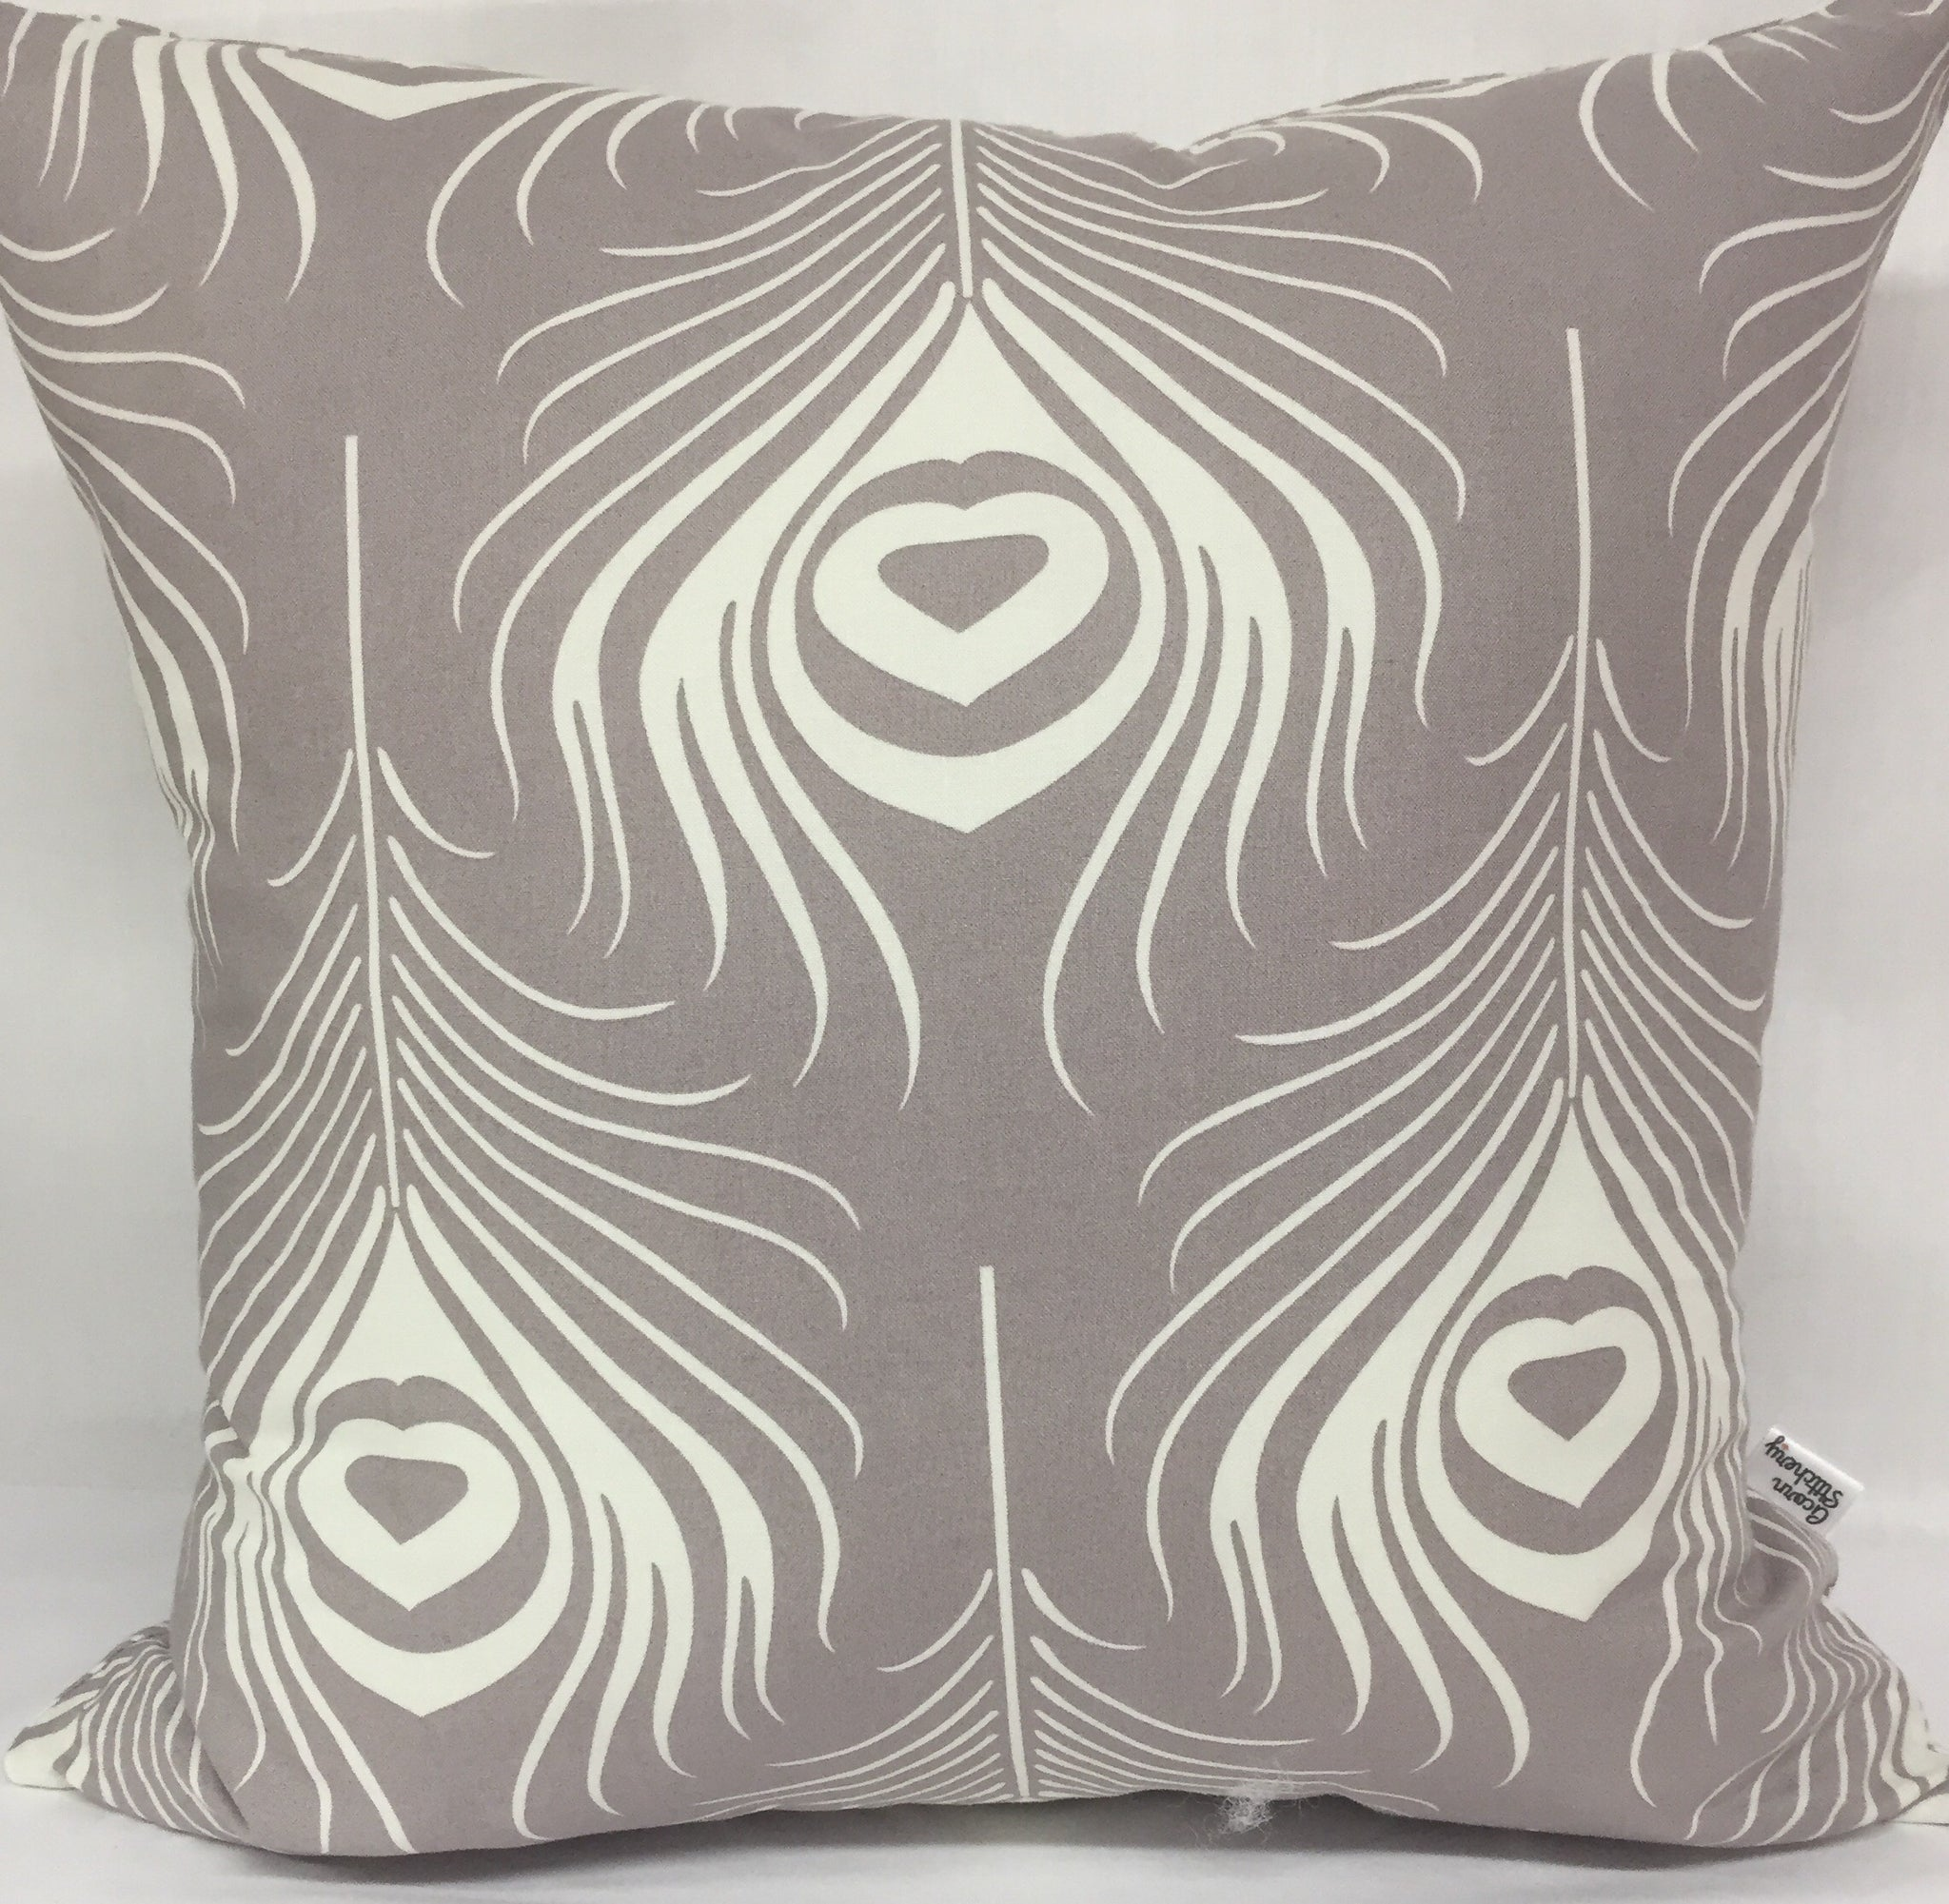 "Grey Peacock Feathers pillow 18""x18"" with insert"